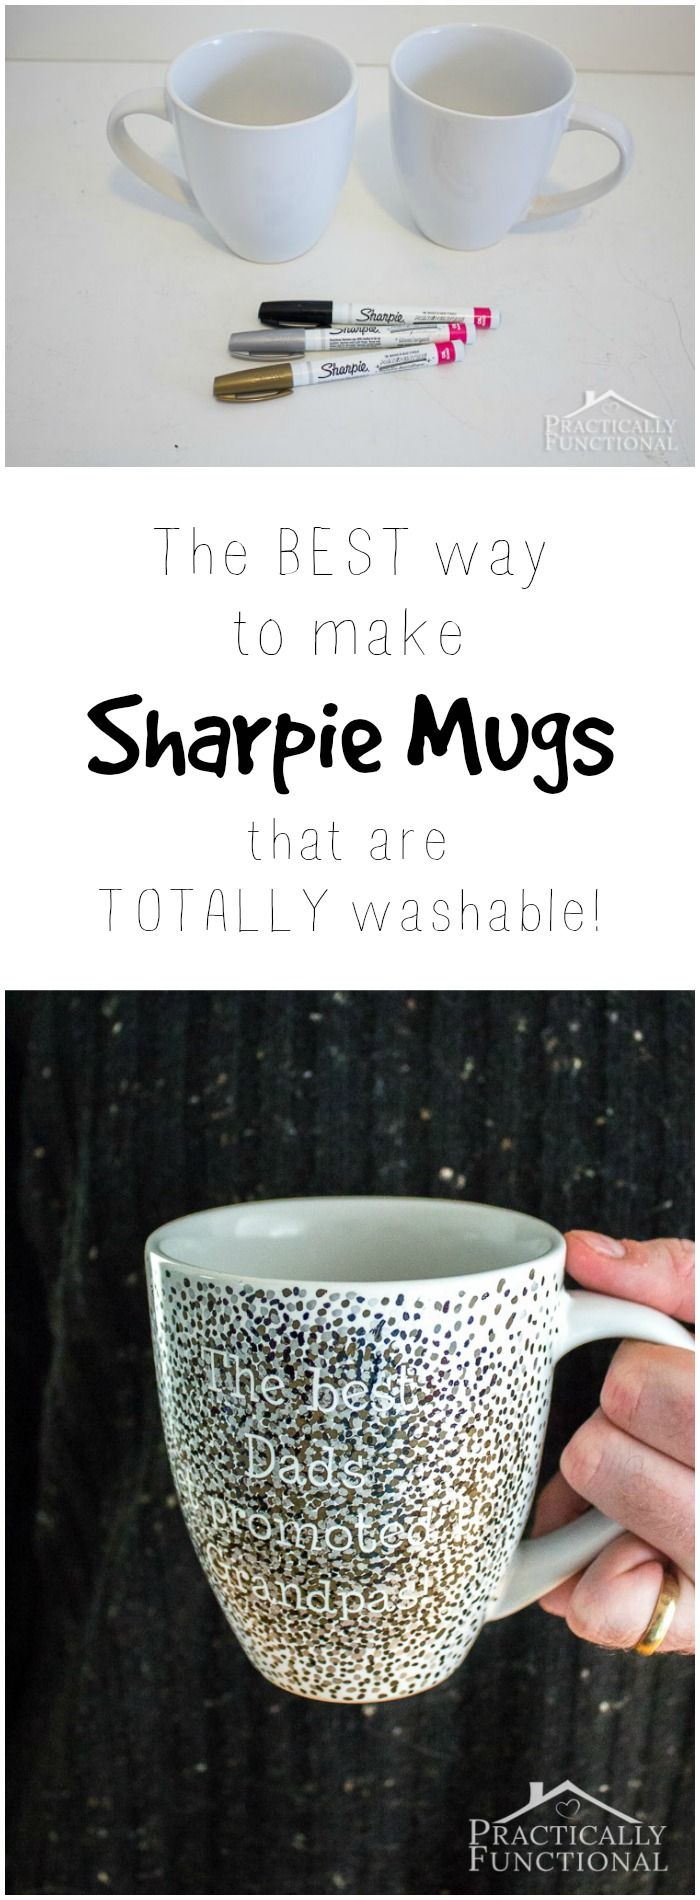 This is the best tutorial for making DIY sharpie mugs that are washable! #SilhouetteCAMEO